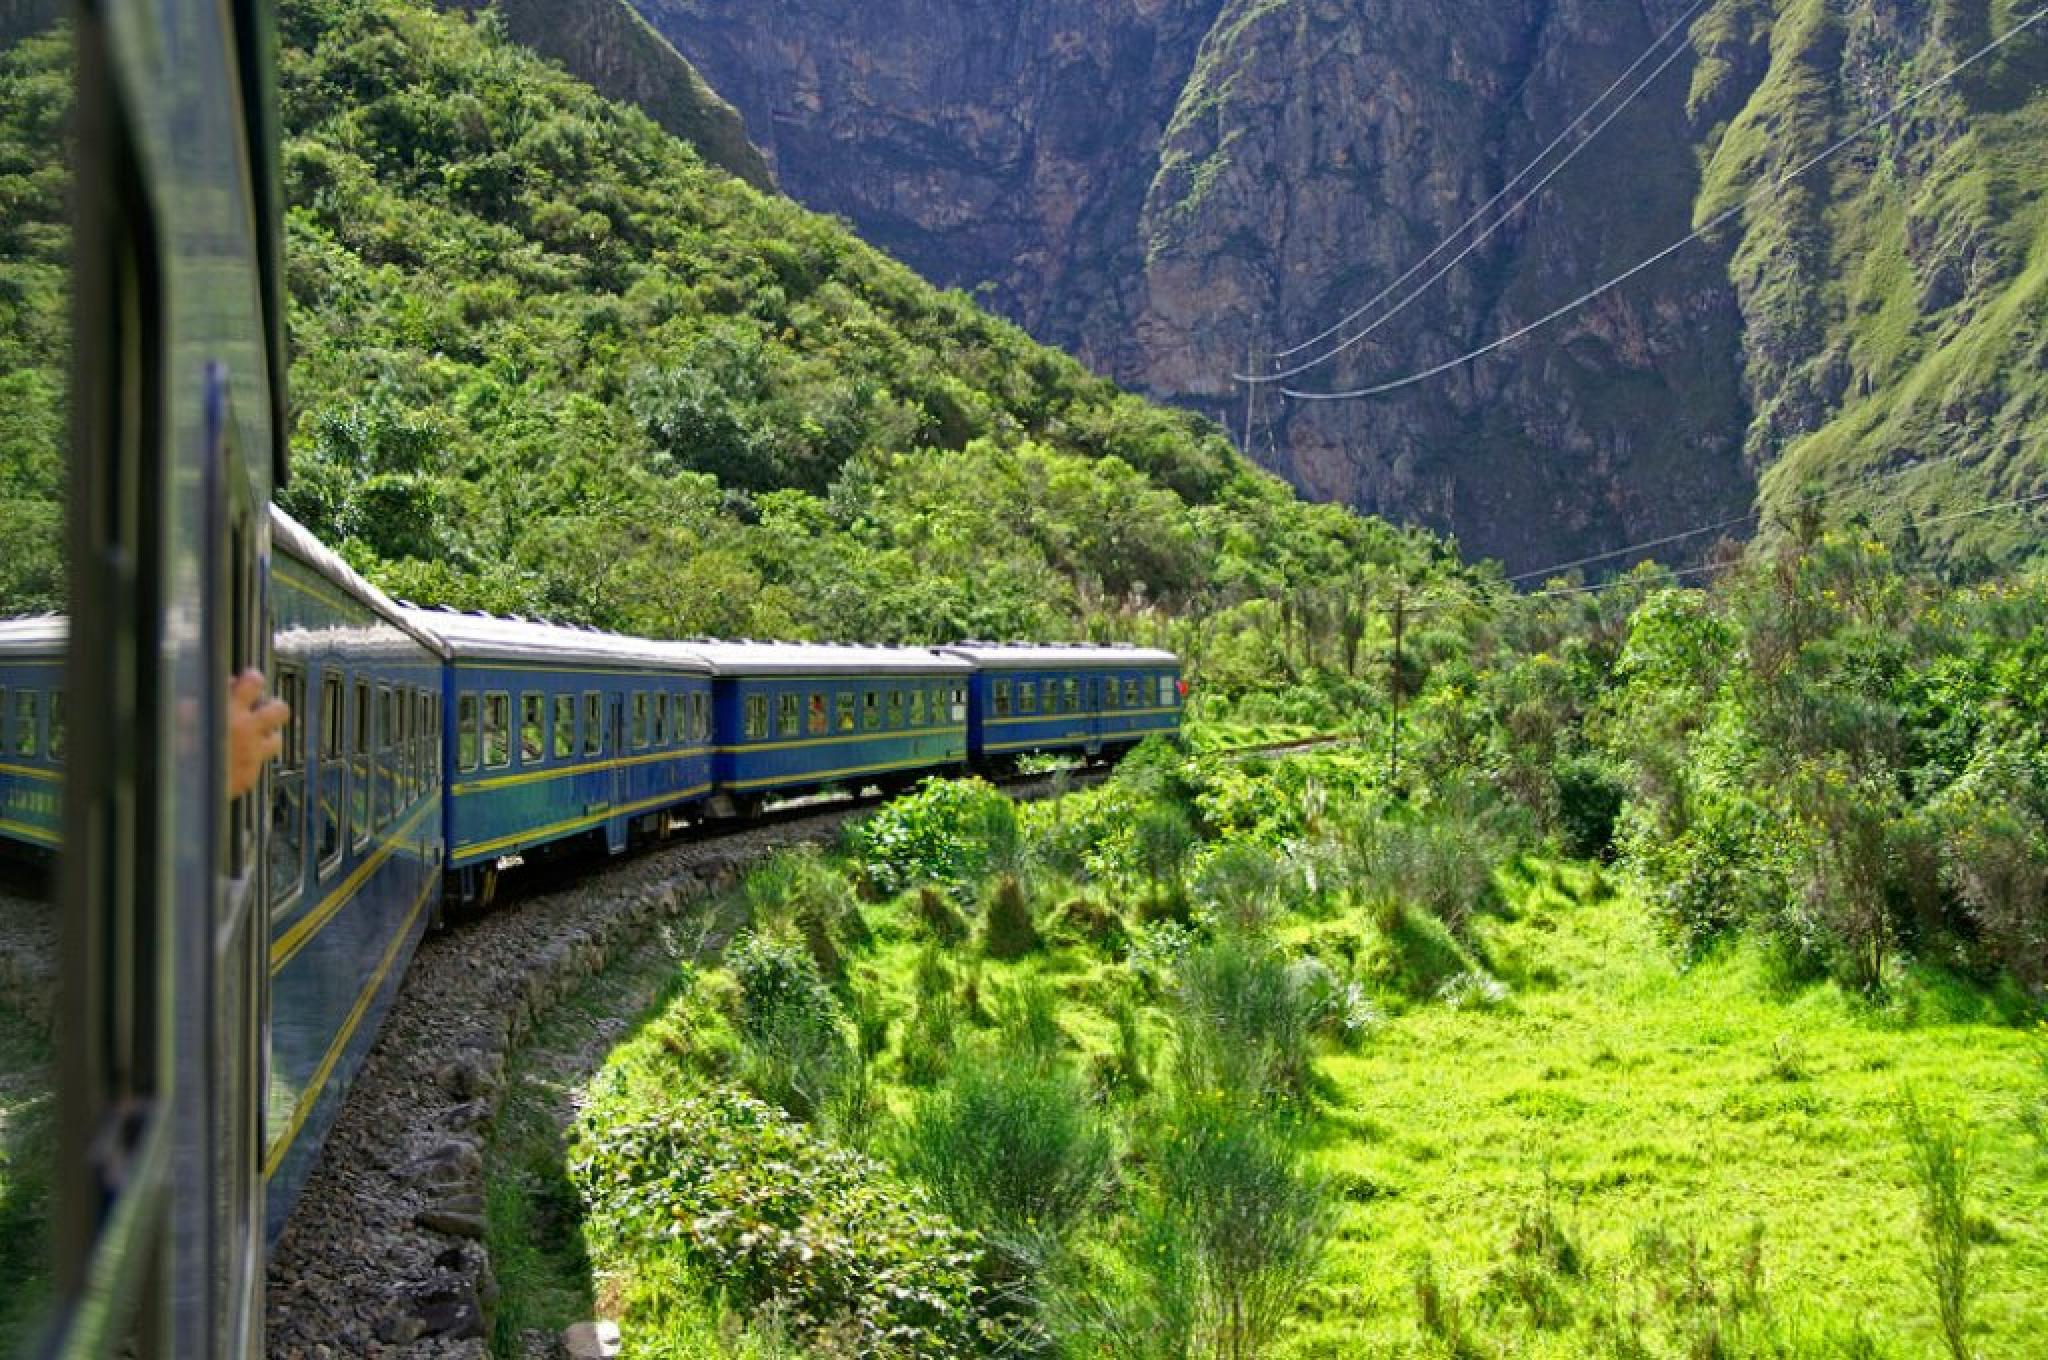 Expedition Train - Ollantaytambo to Aguas Calientes